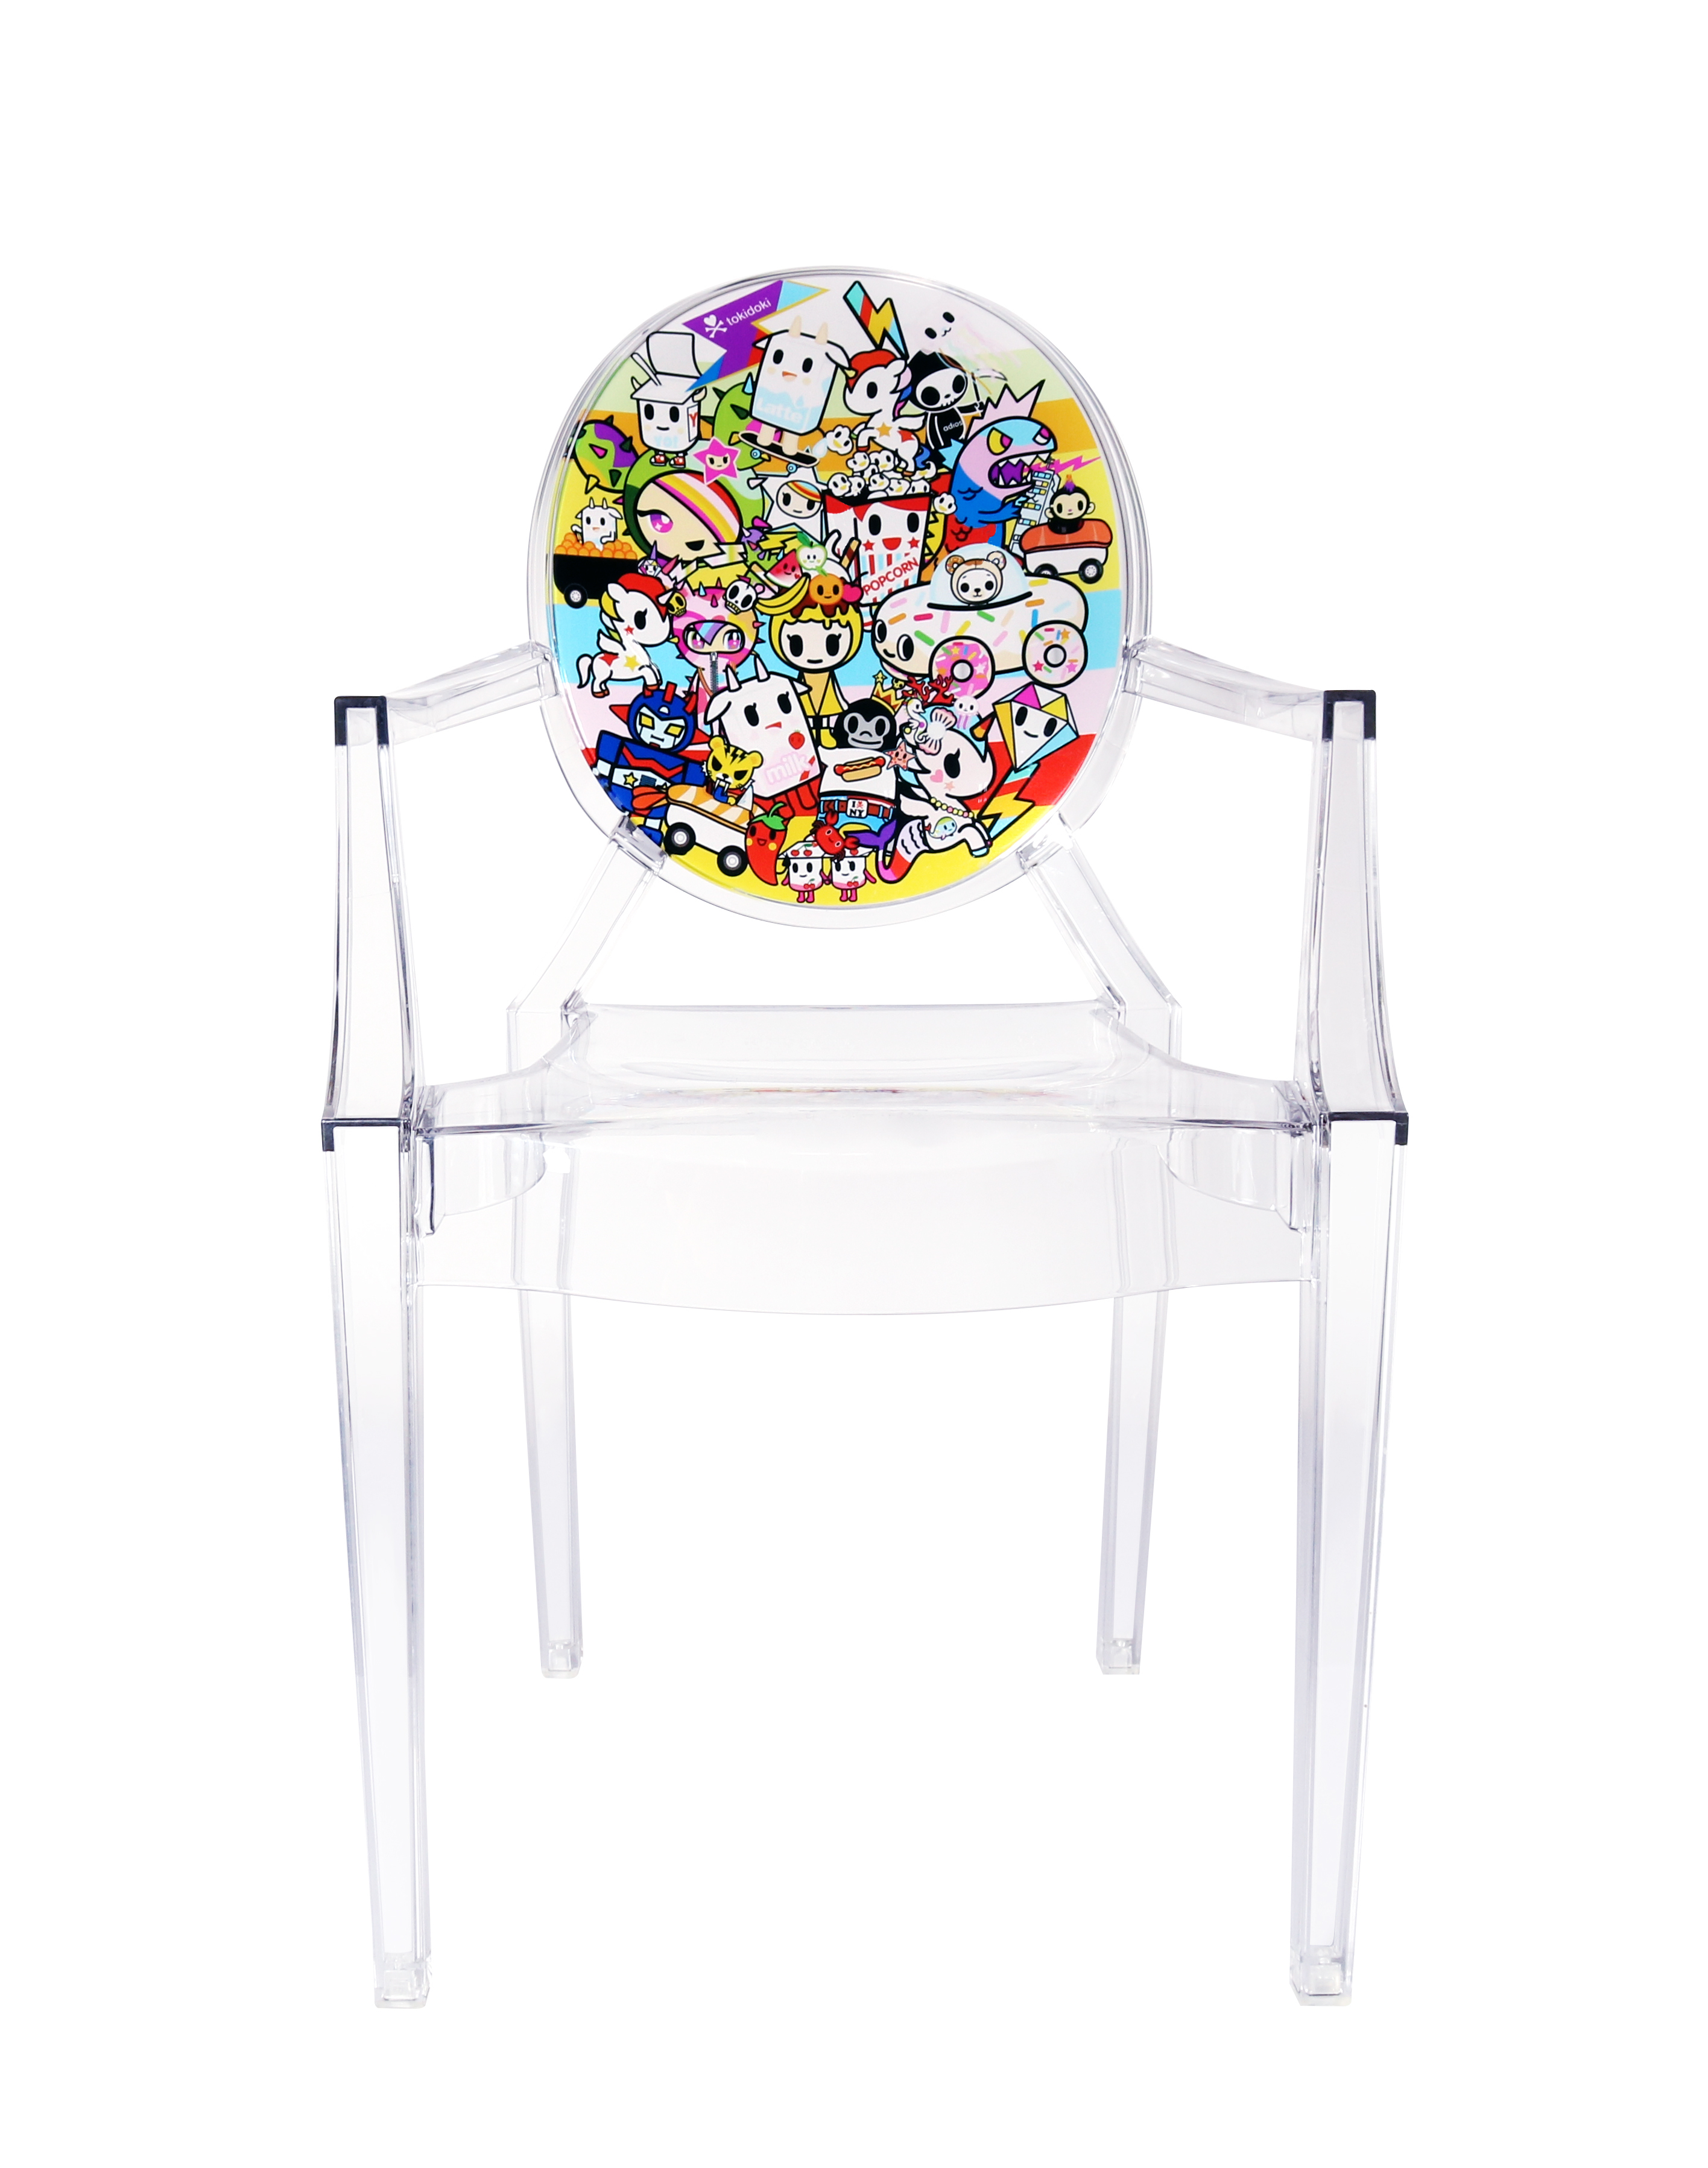 the best ghost ever starck designed designedcult chair blog chairs furniture iconic